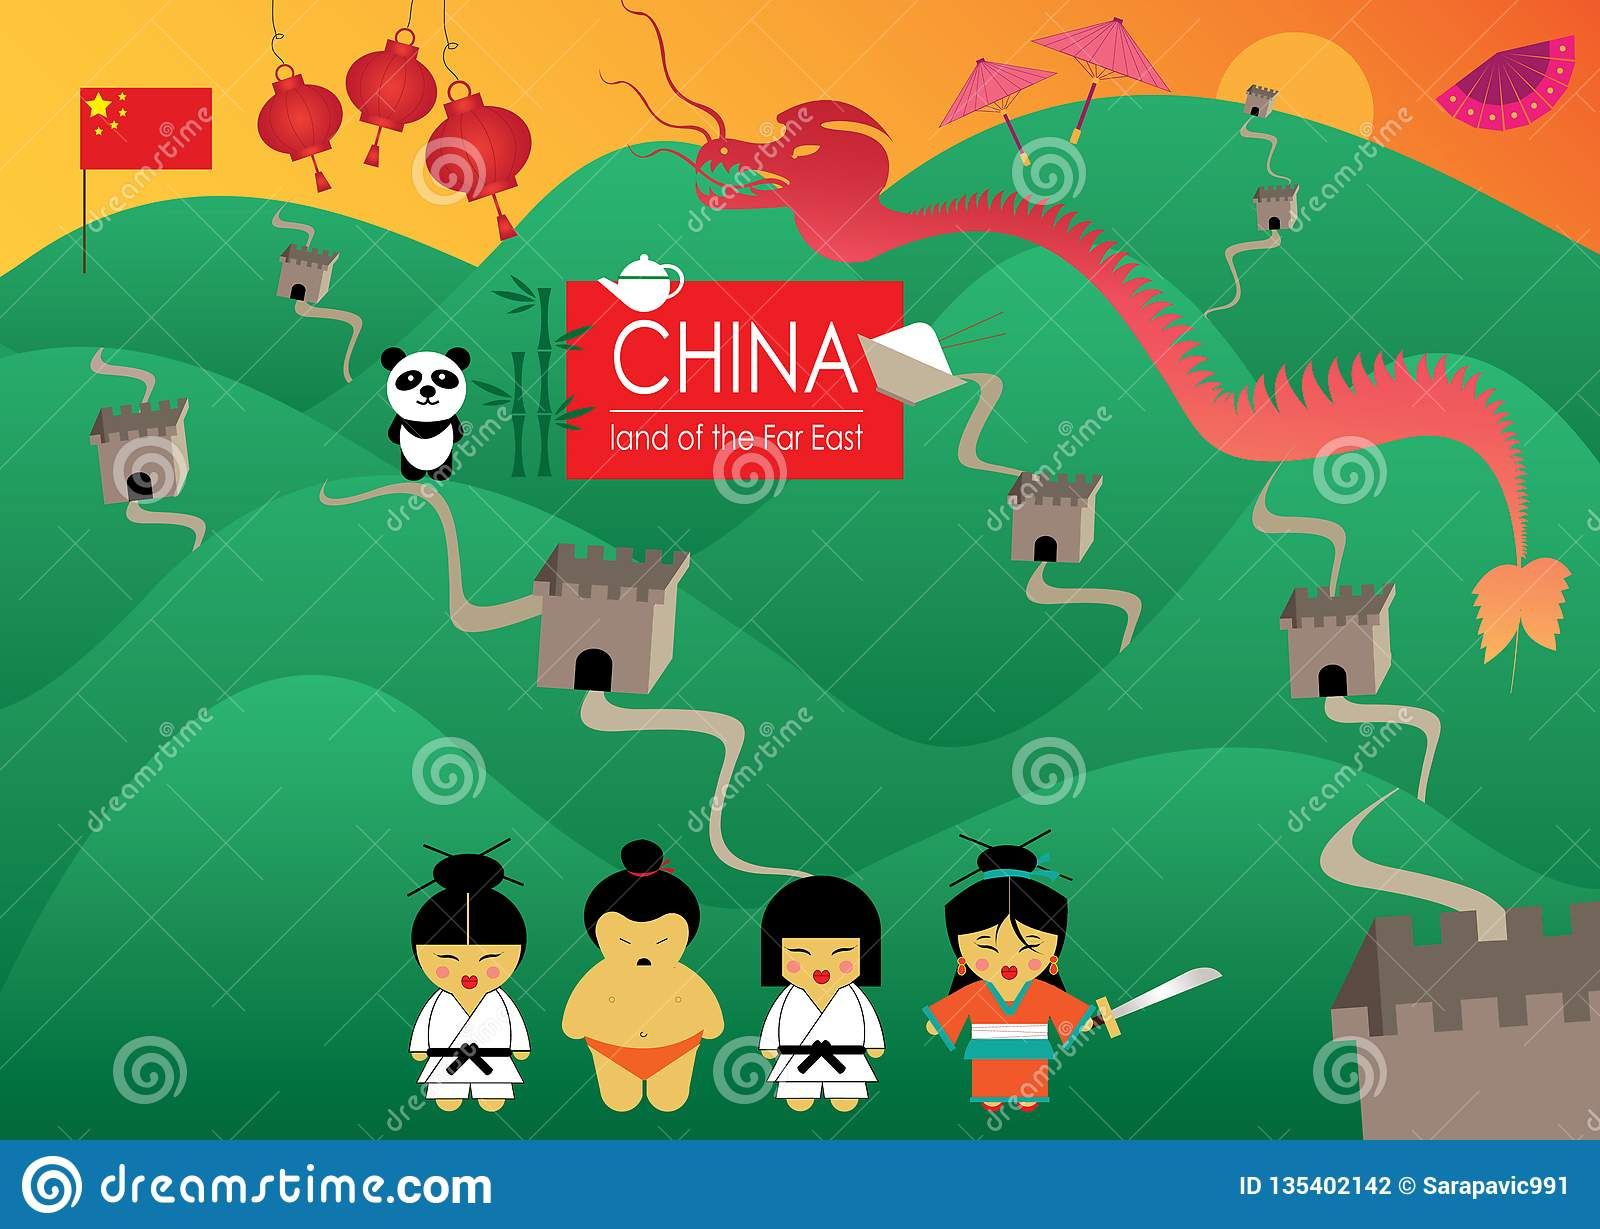 China land of far east with beautiful illustrations